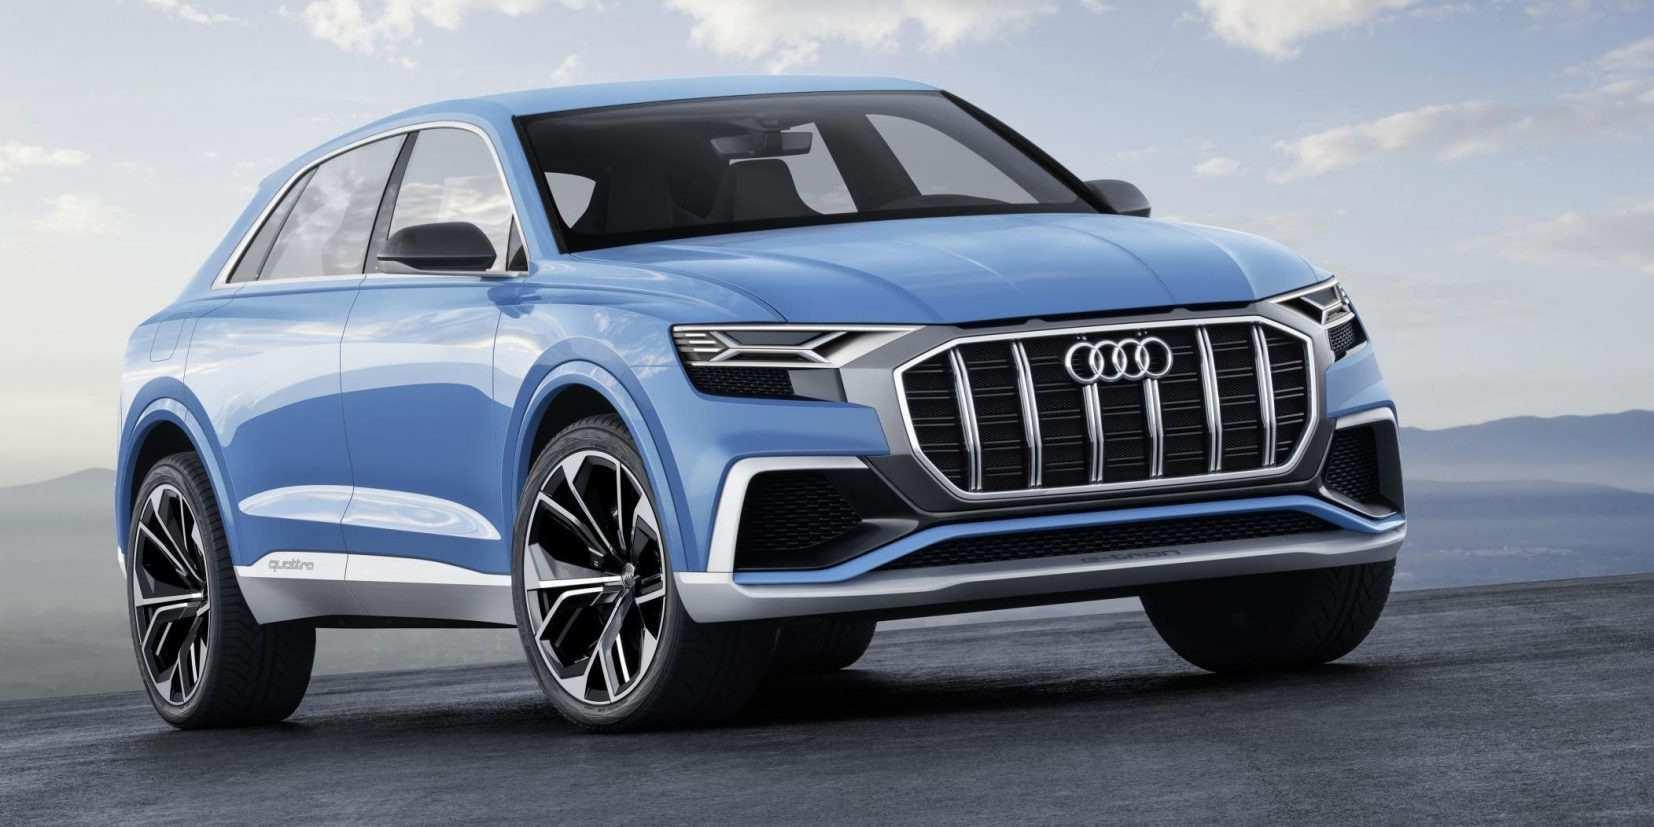 26 All New 2020 Audi Sq5 History by 2020 Audi Sq5